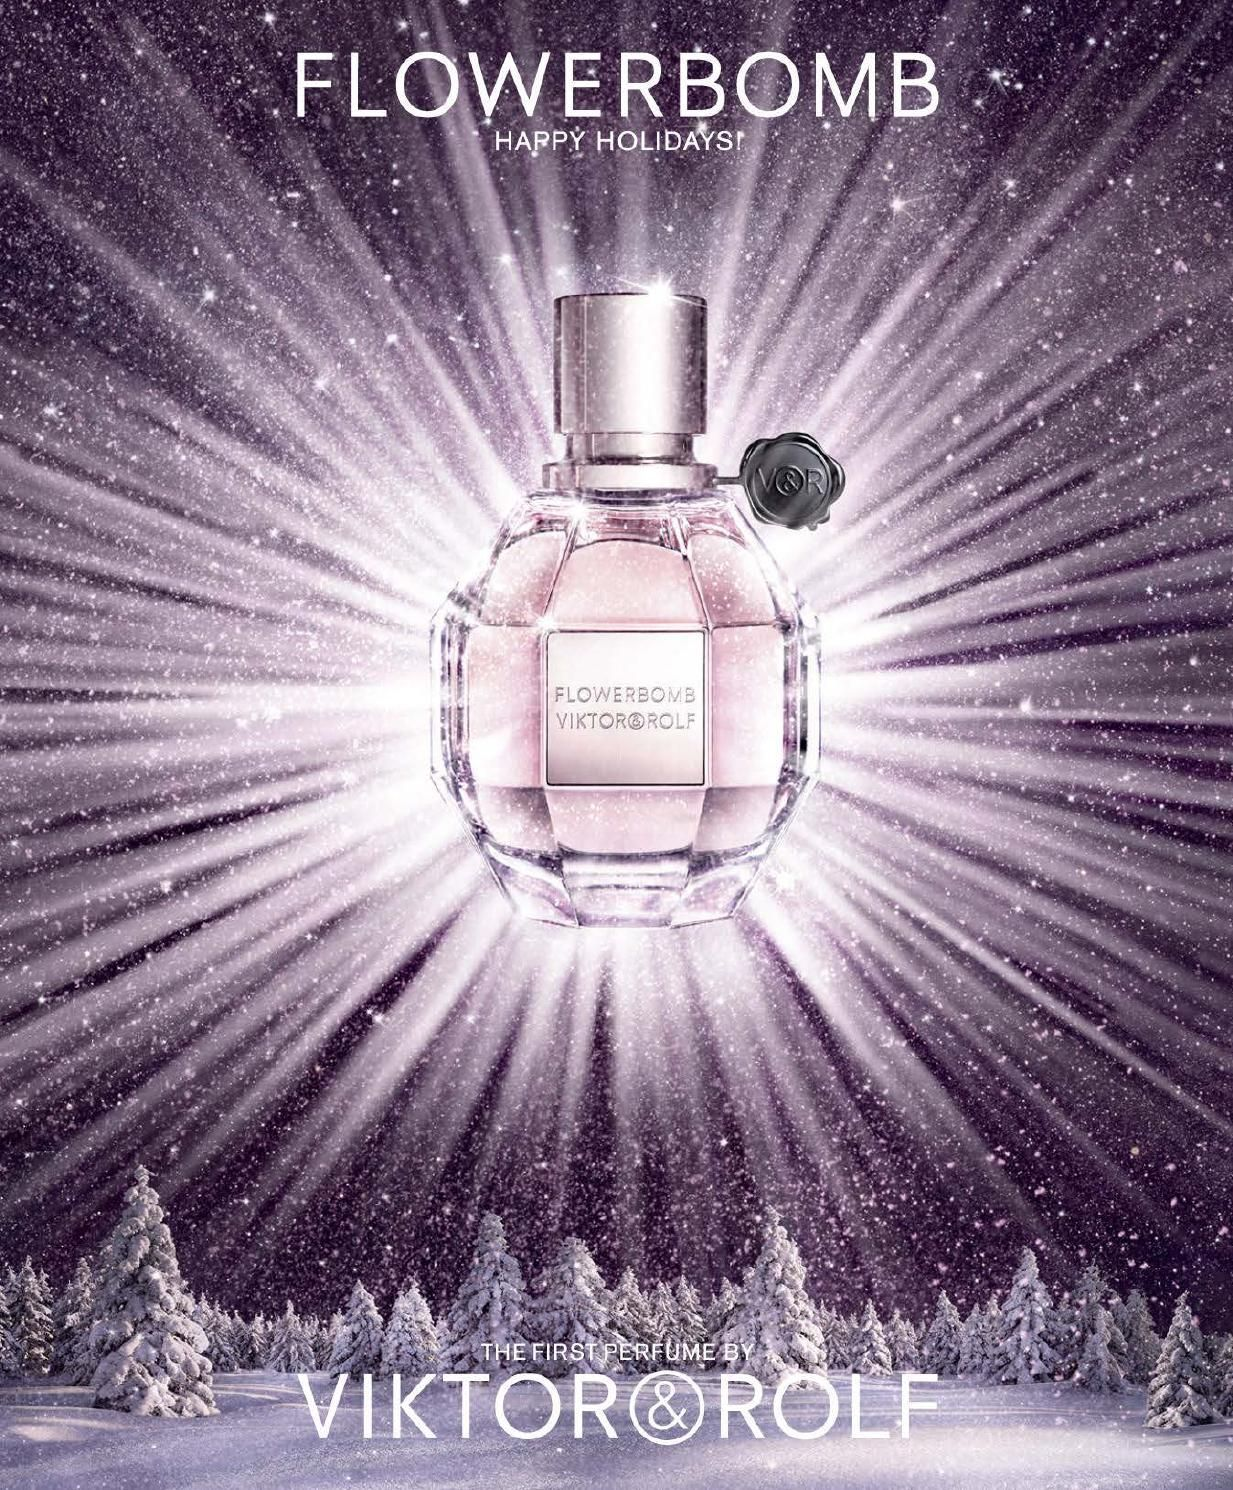 MAG 65 by Xeny Ale in 2020 Flowerbomb perfume, Perfume